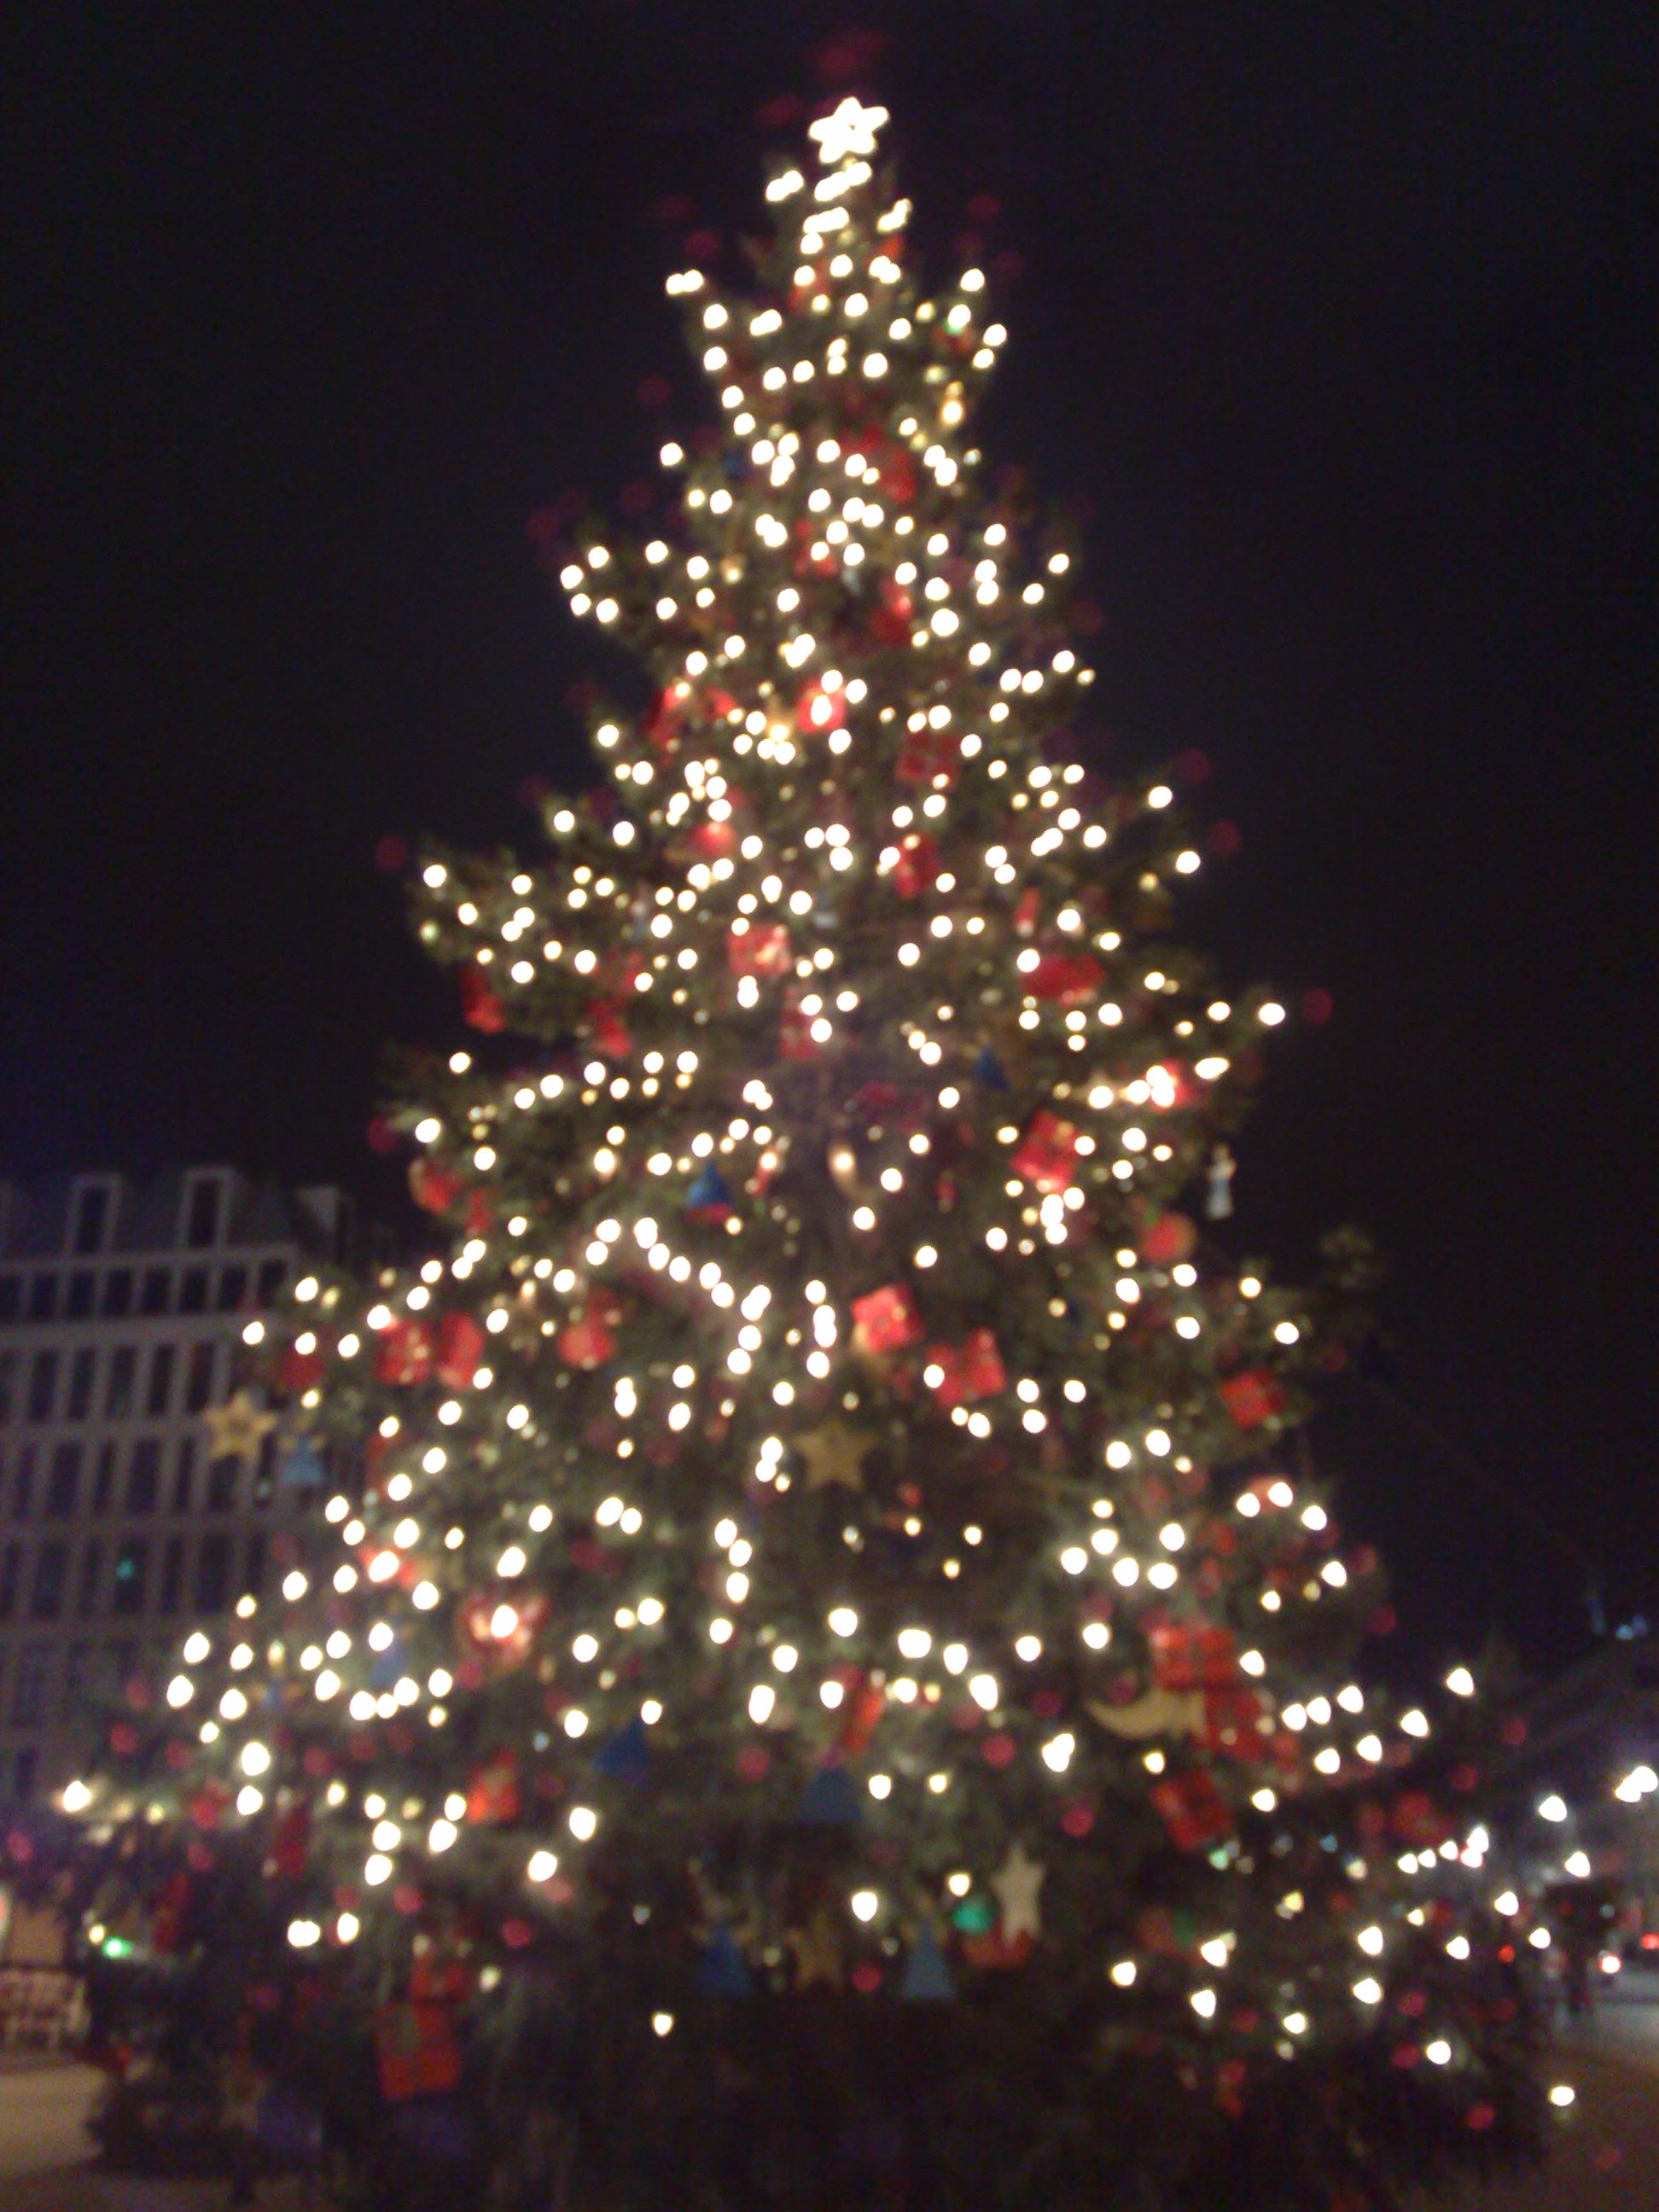 Nice Christmas Tree an example of perfect symmetry | melodic ambience